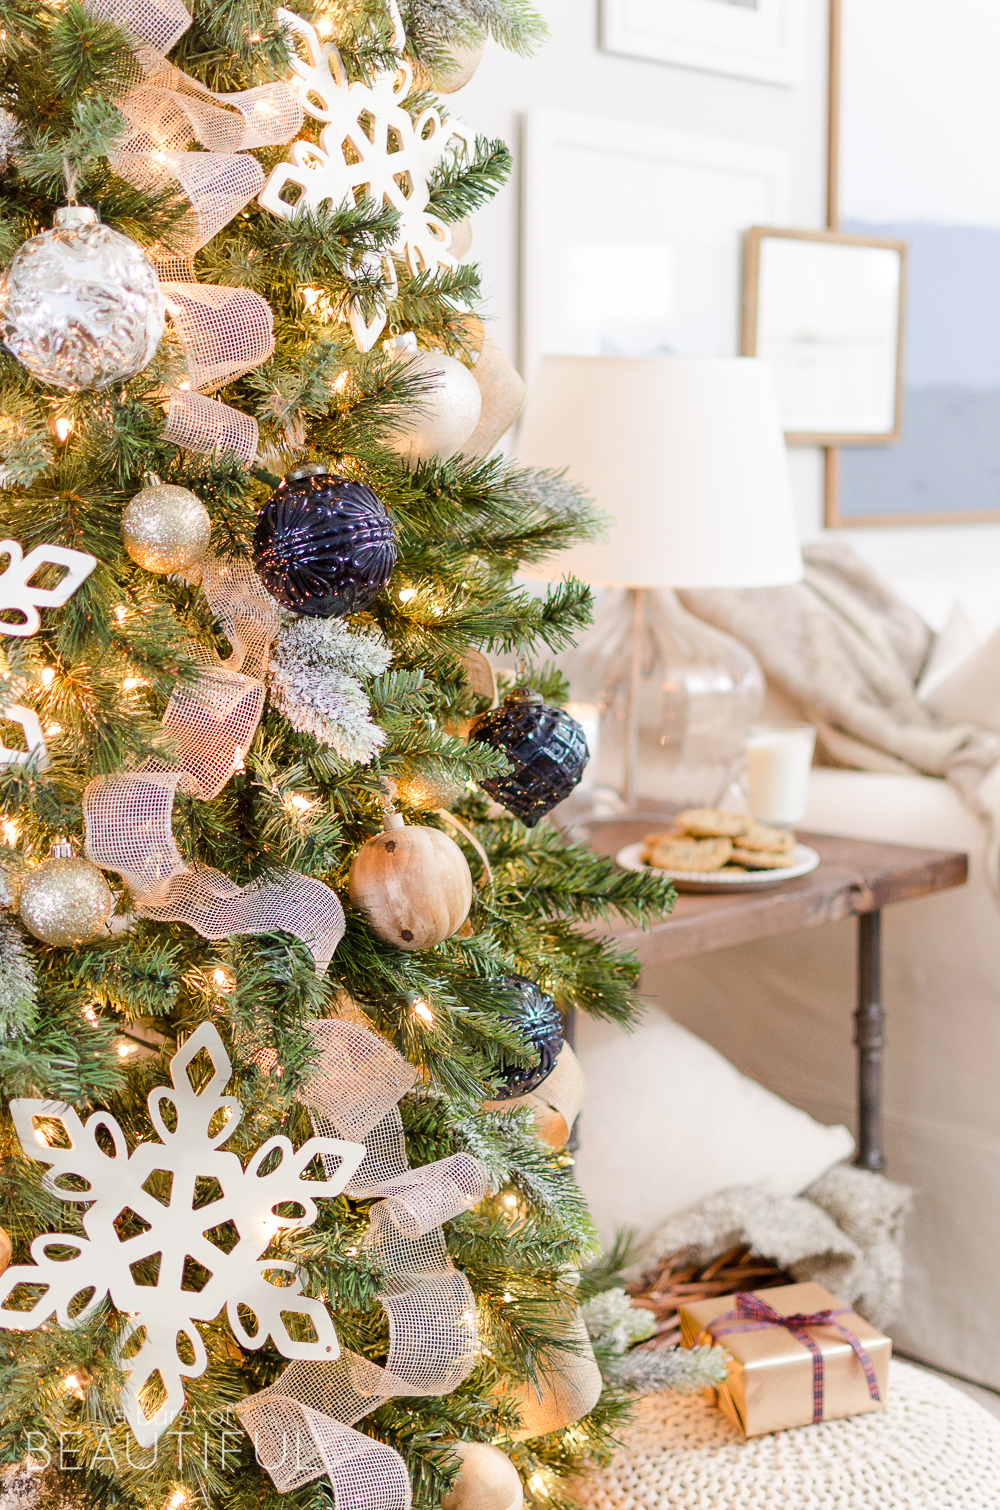 A budget buy can still make a statement. Amazon's top-selling Christmas tree measures a solid six feet tall with plenty of branch tips ready for decorating. Yep, you can find this extravagant.